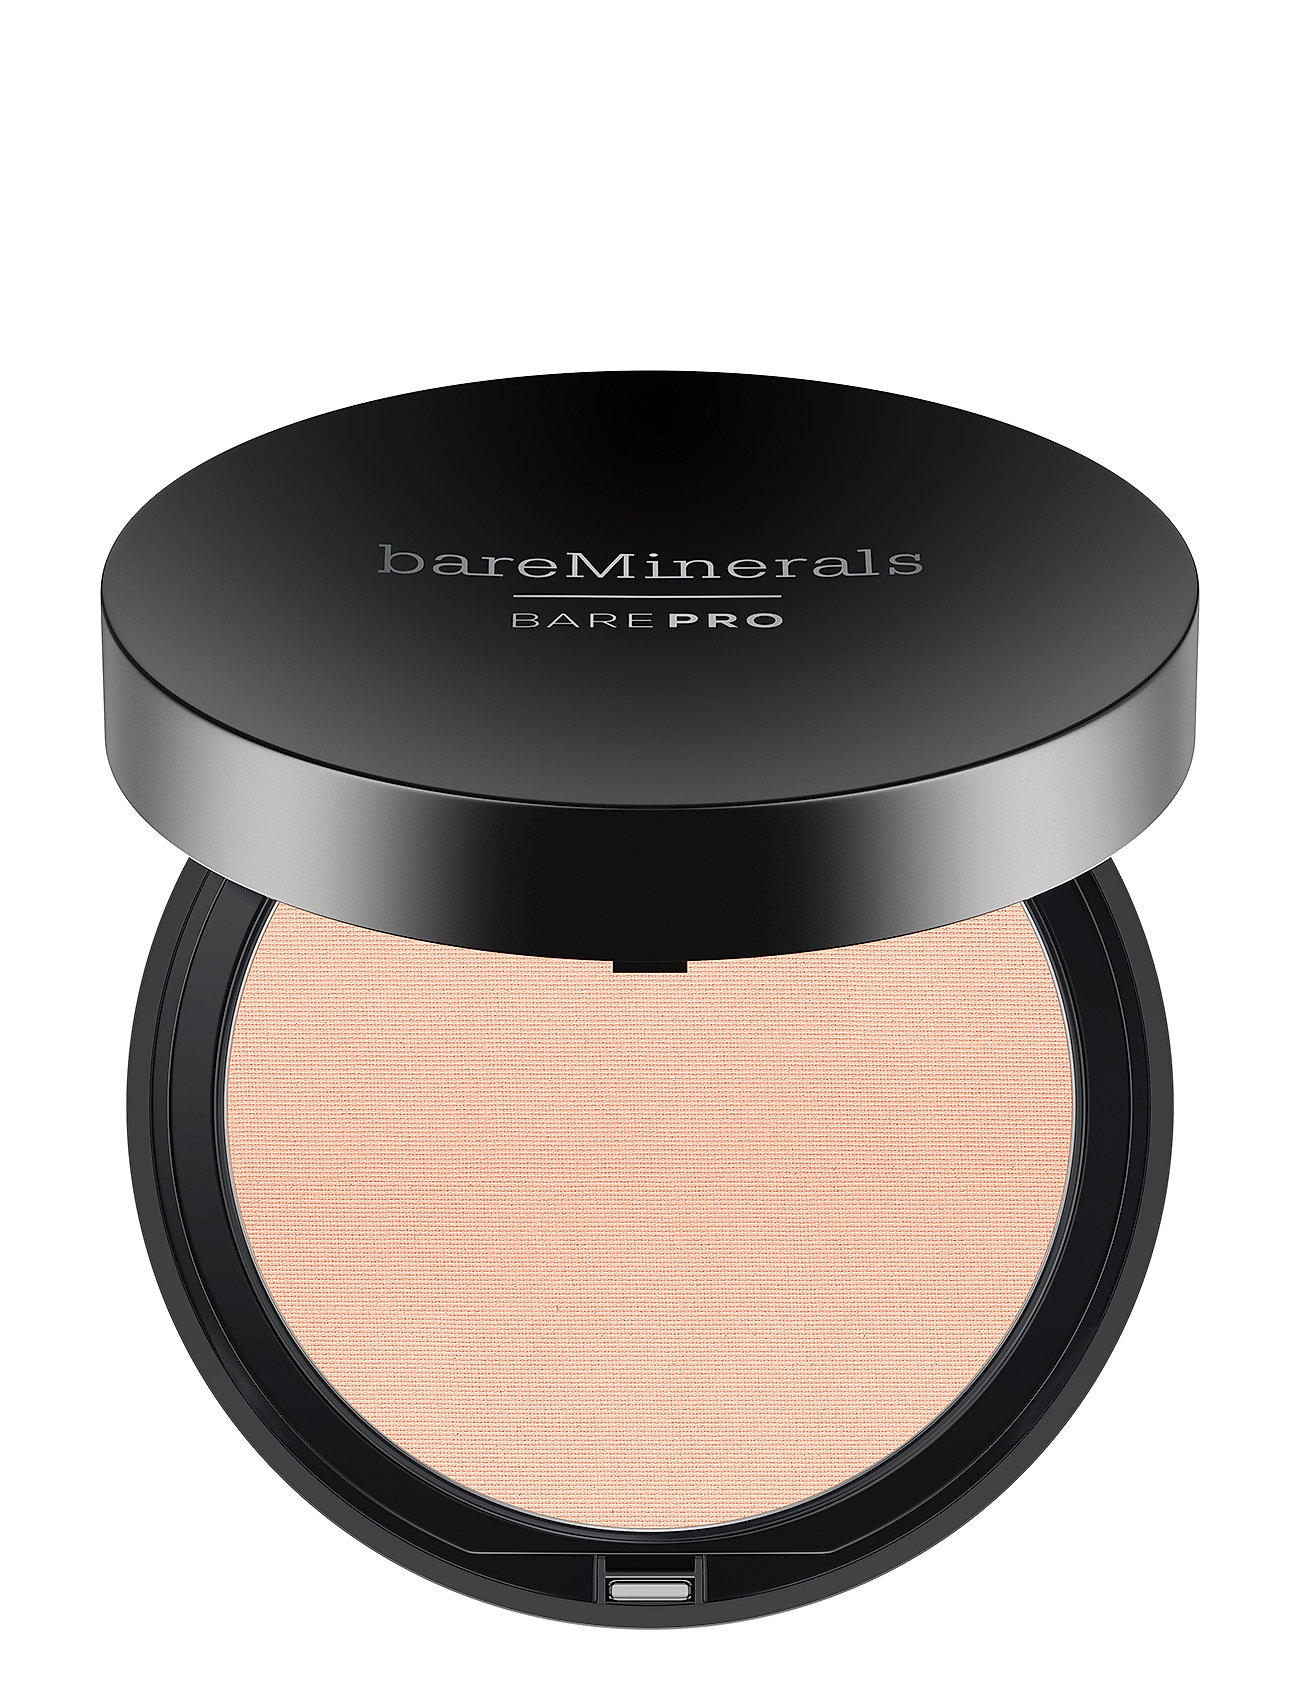 Image of Barepro Performance Wear Powder Foundation Foundation Makeup BareMinerals (3251433701)